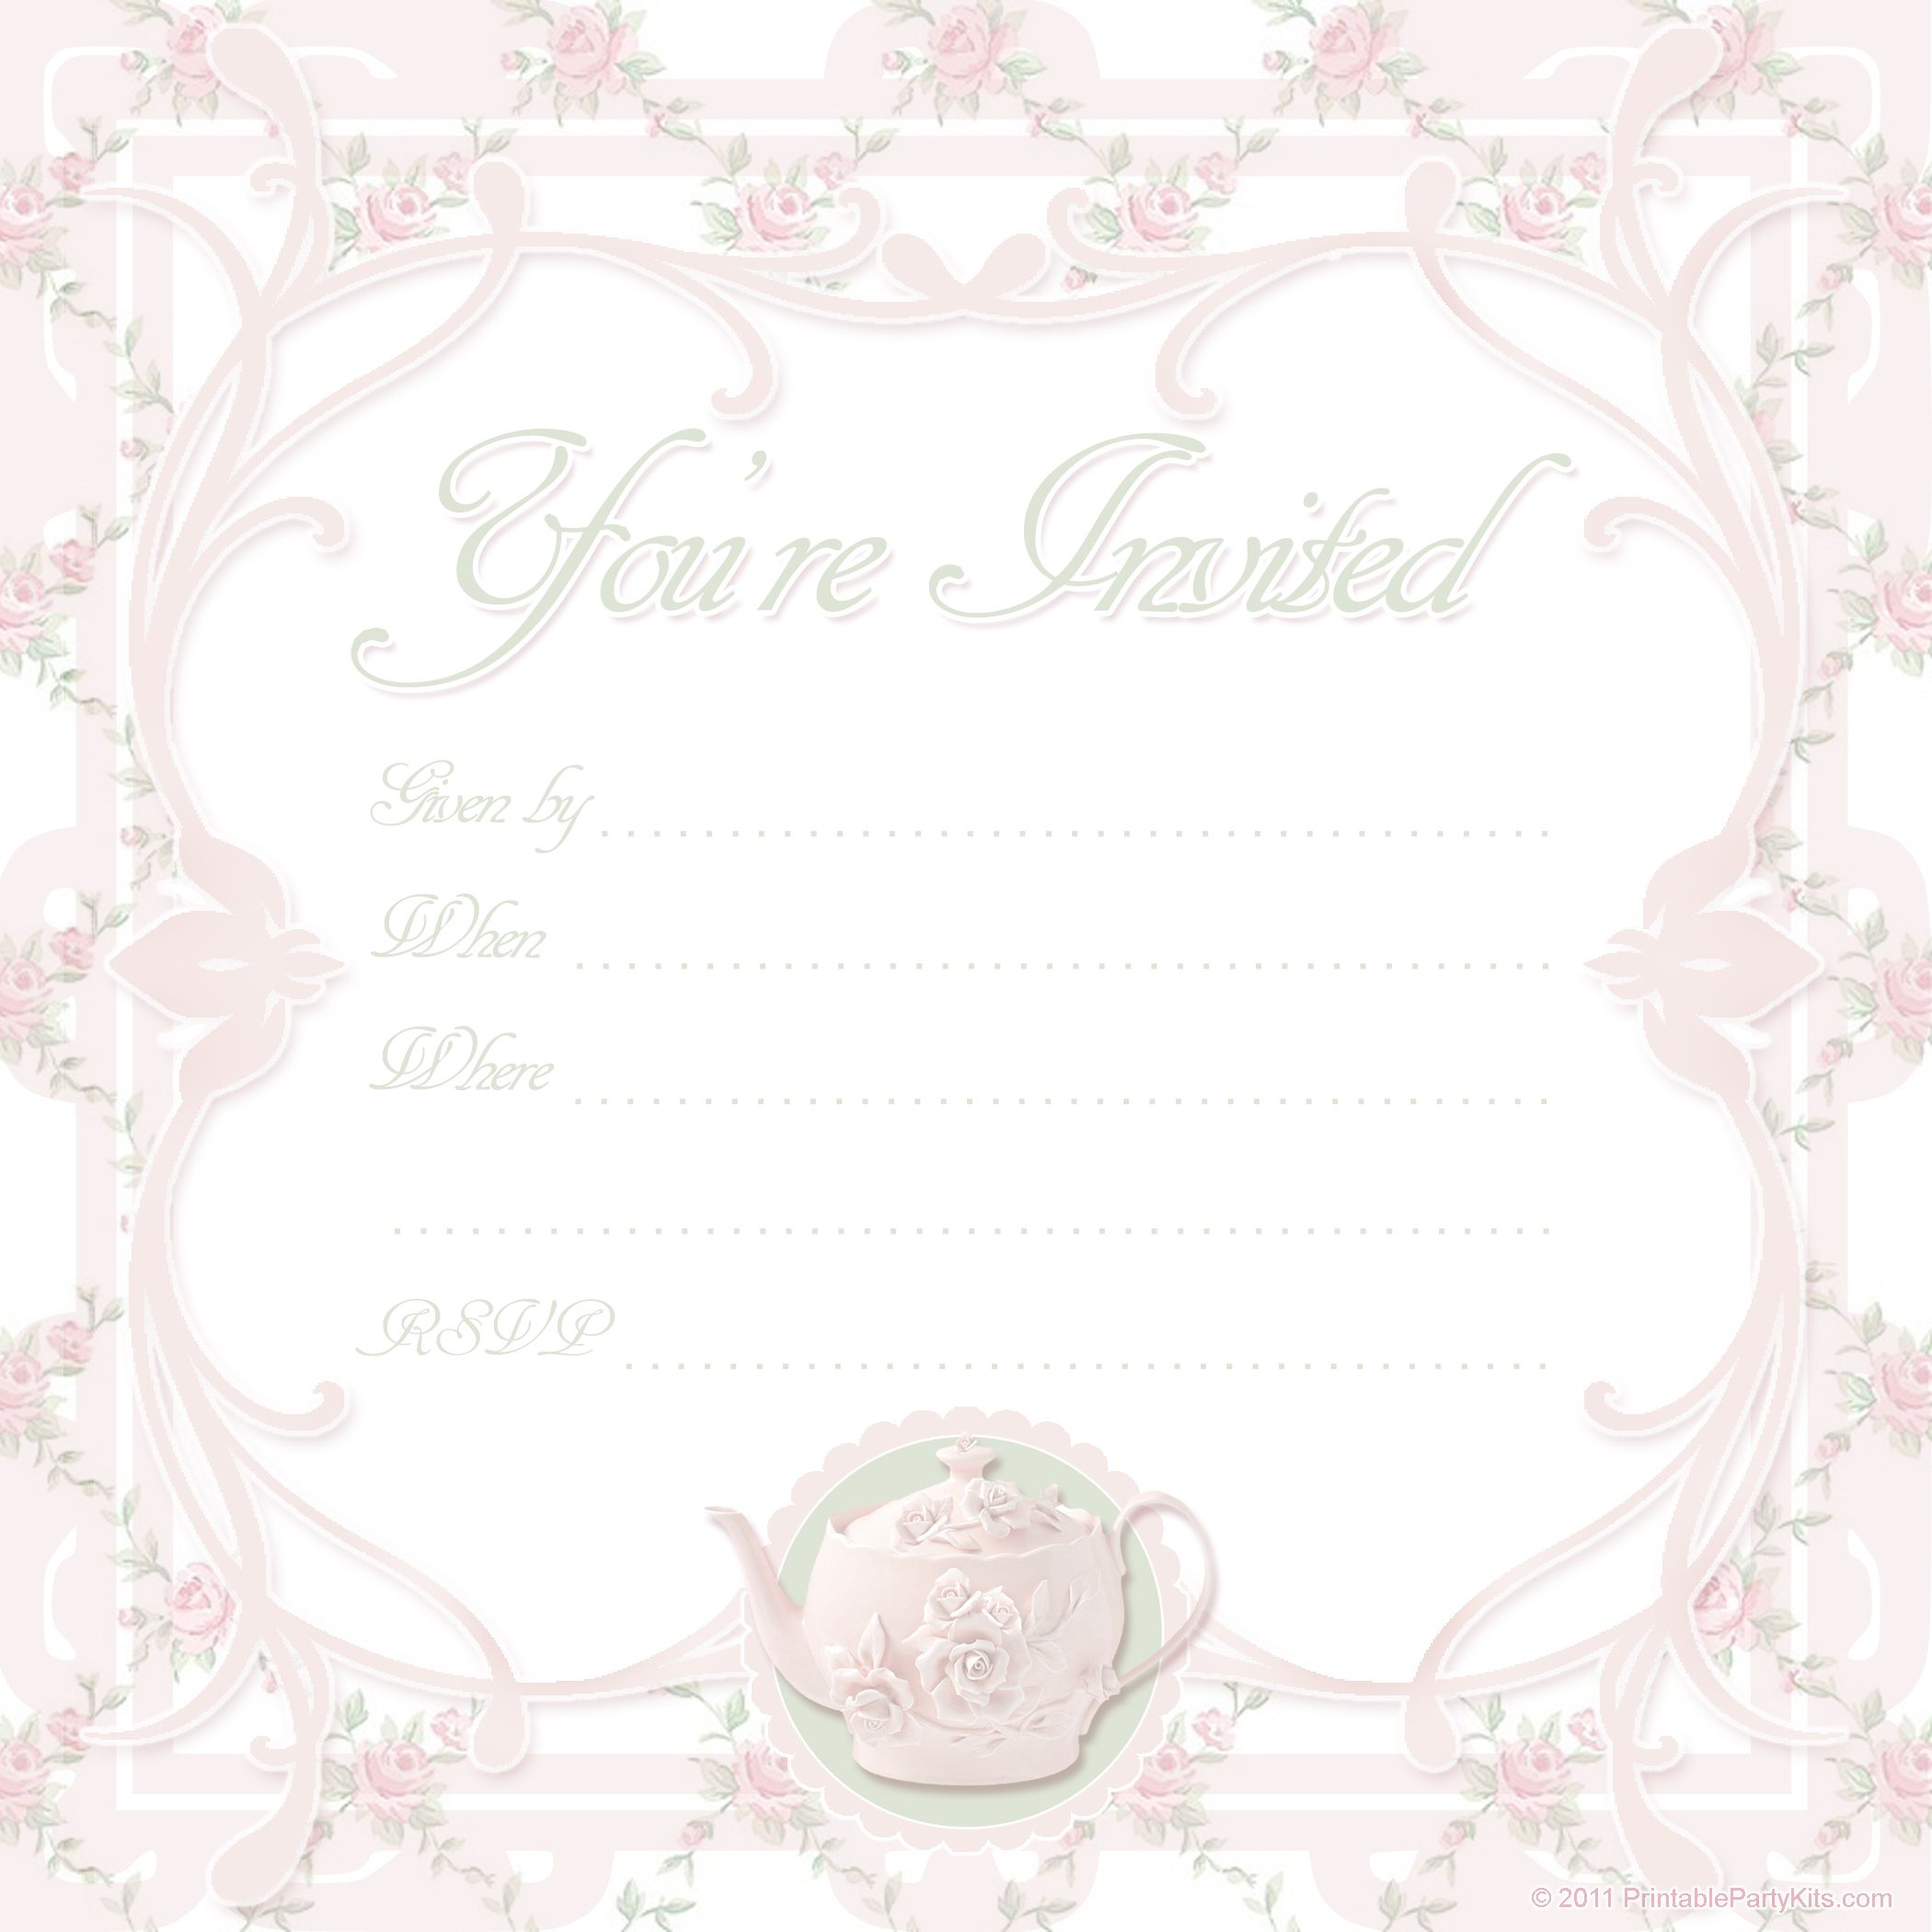 vintage tea party invitations free printable tea party invite template printable party kits